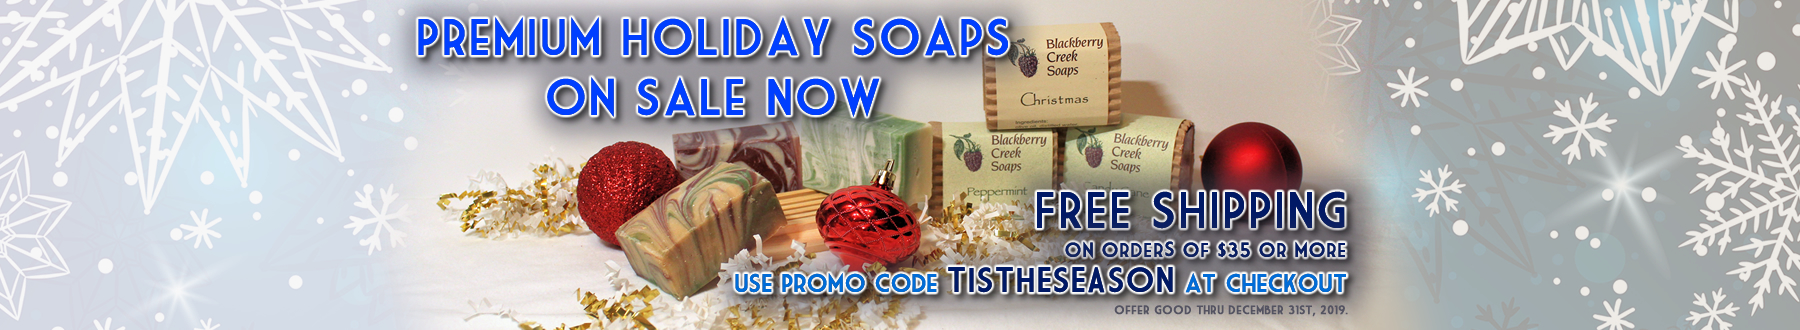 Premium Holiday Soaps On Sale Now - Free Shipping On Orders Over $35, Use Promo Code 'TISTHESEASON' At Checkout